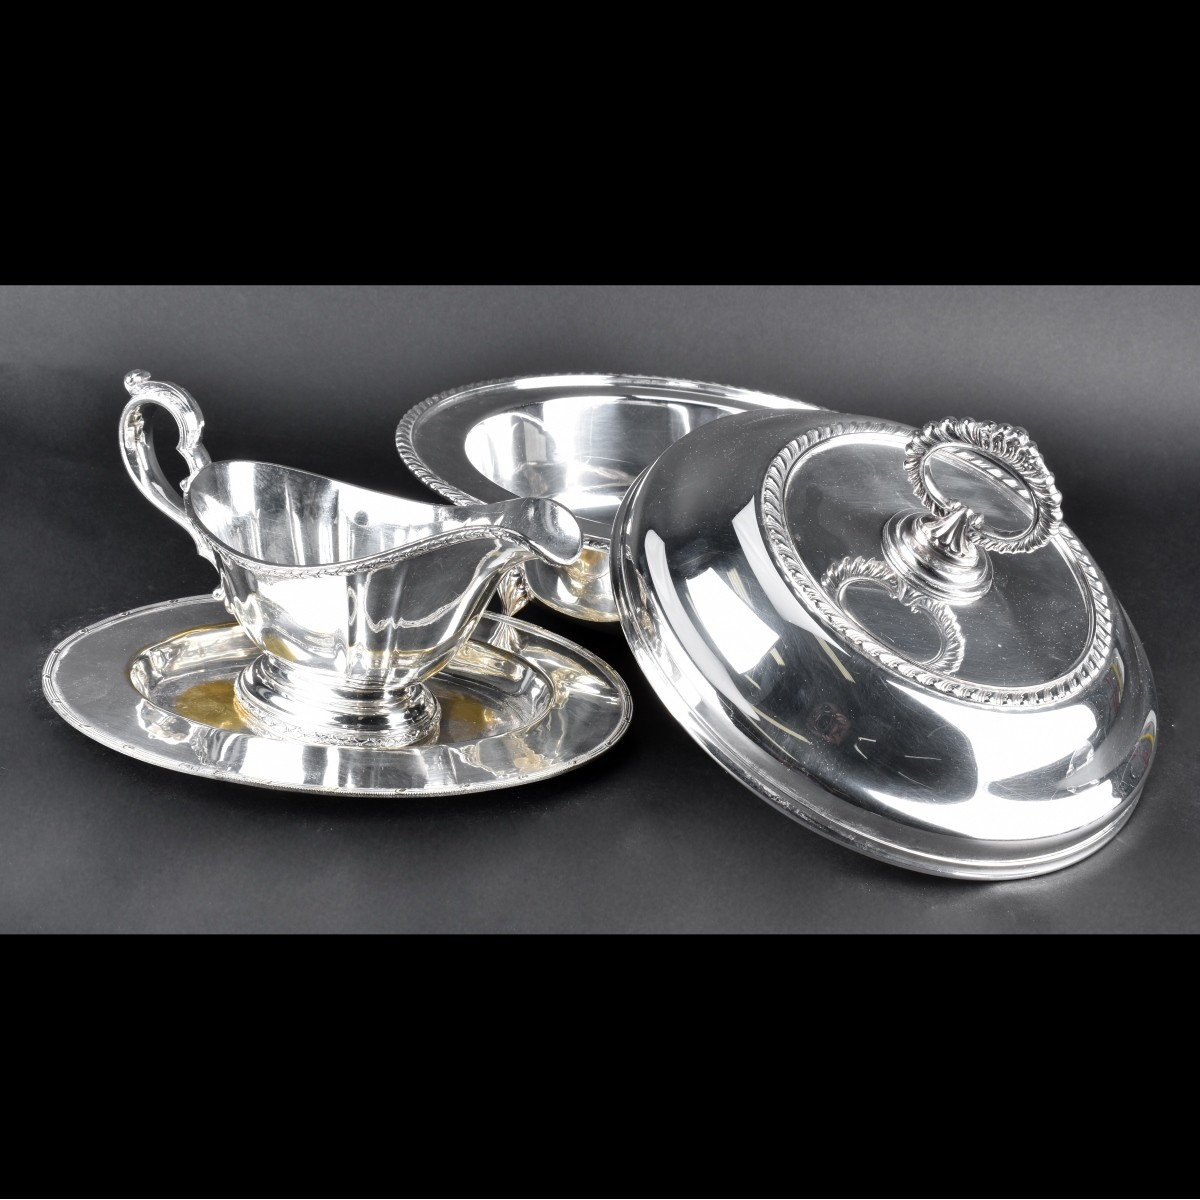 Premium Silver Plate Holloware Lot